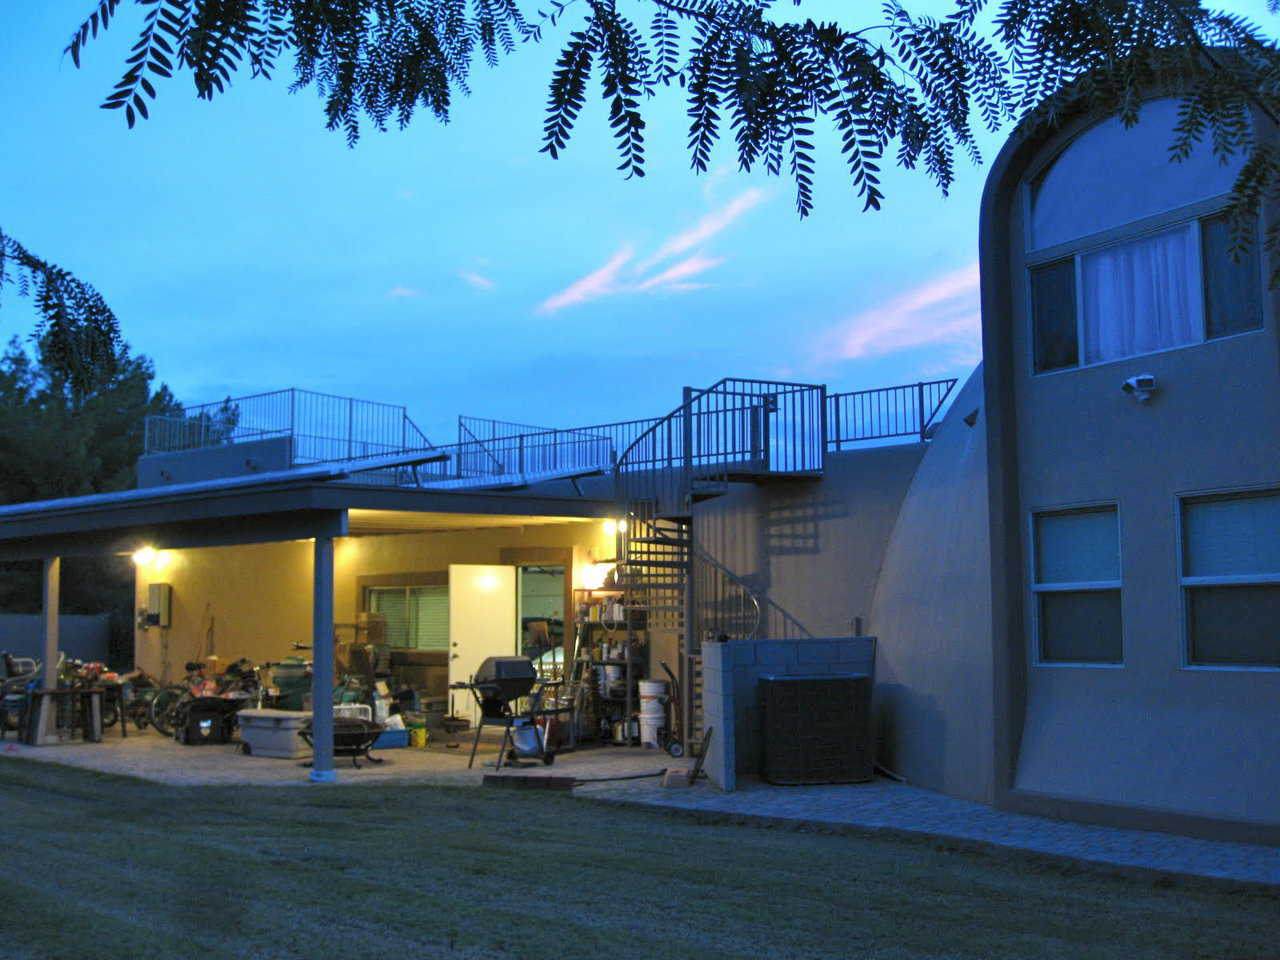 Patio – The Stouts built a jumbo-size patio on the backside of their garage.